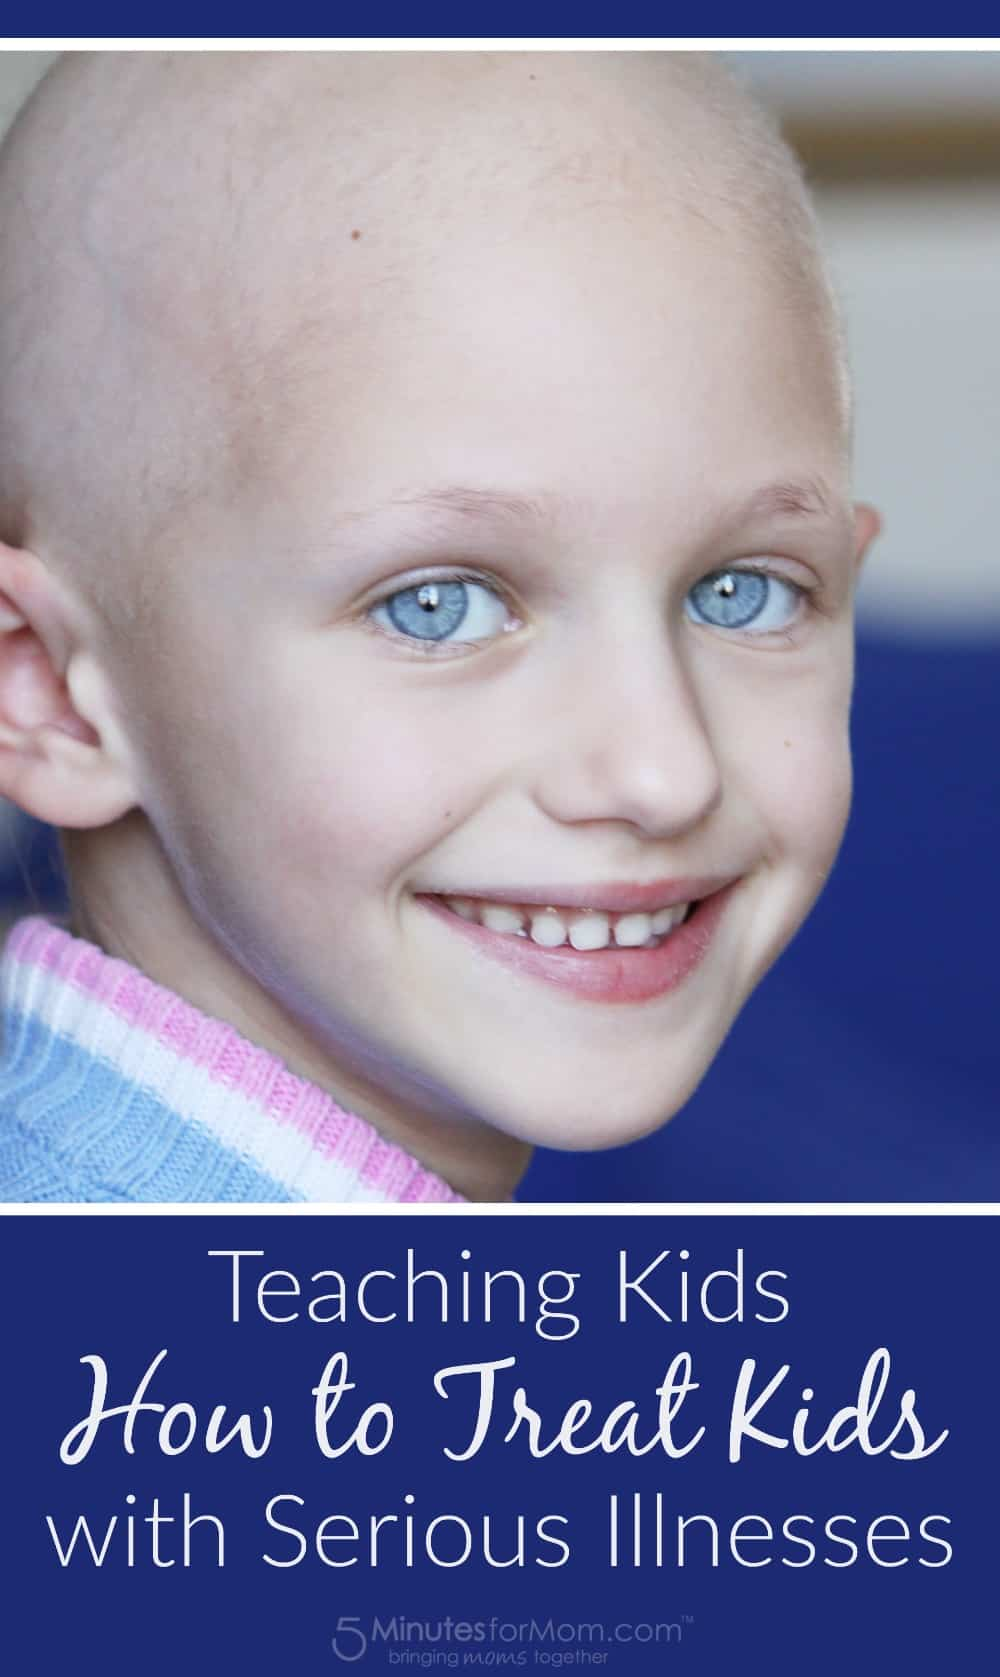 Teaching kids how to treat other kids with serious illnesses